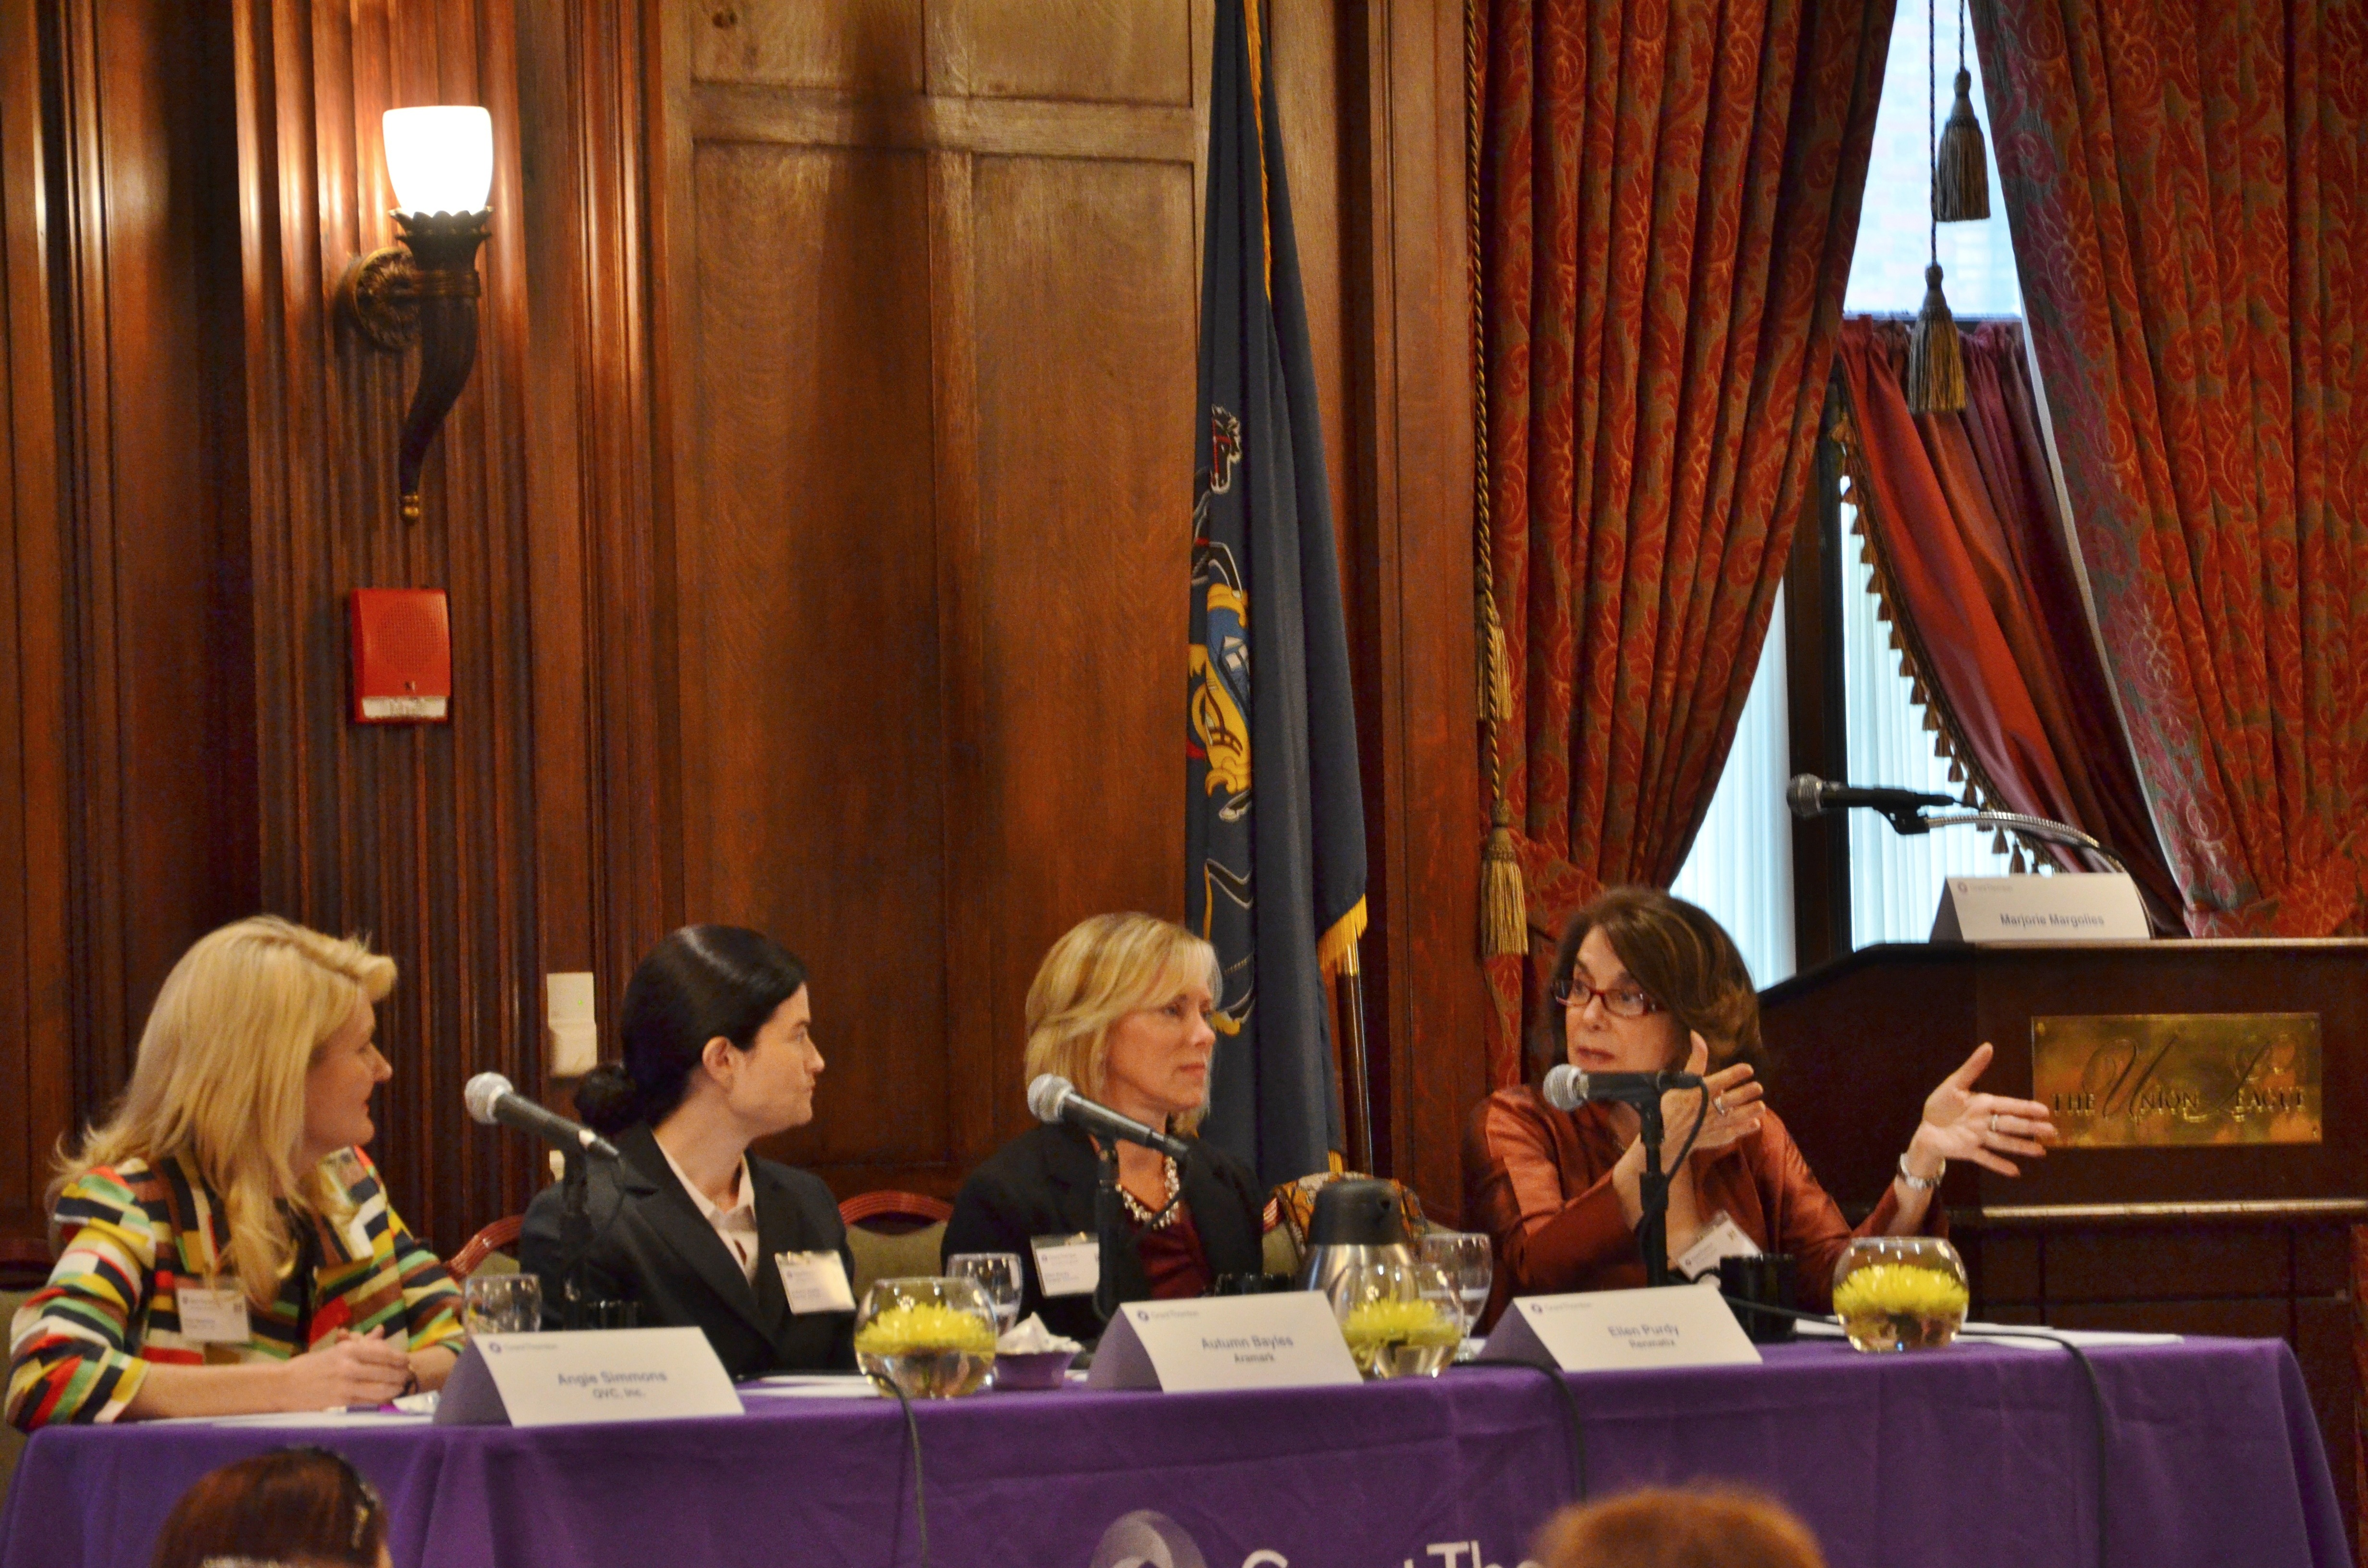 Another shot of the panelists at this year's Women@Grant Thornton 8th annual women's leadership breakfast.